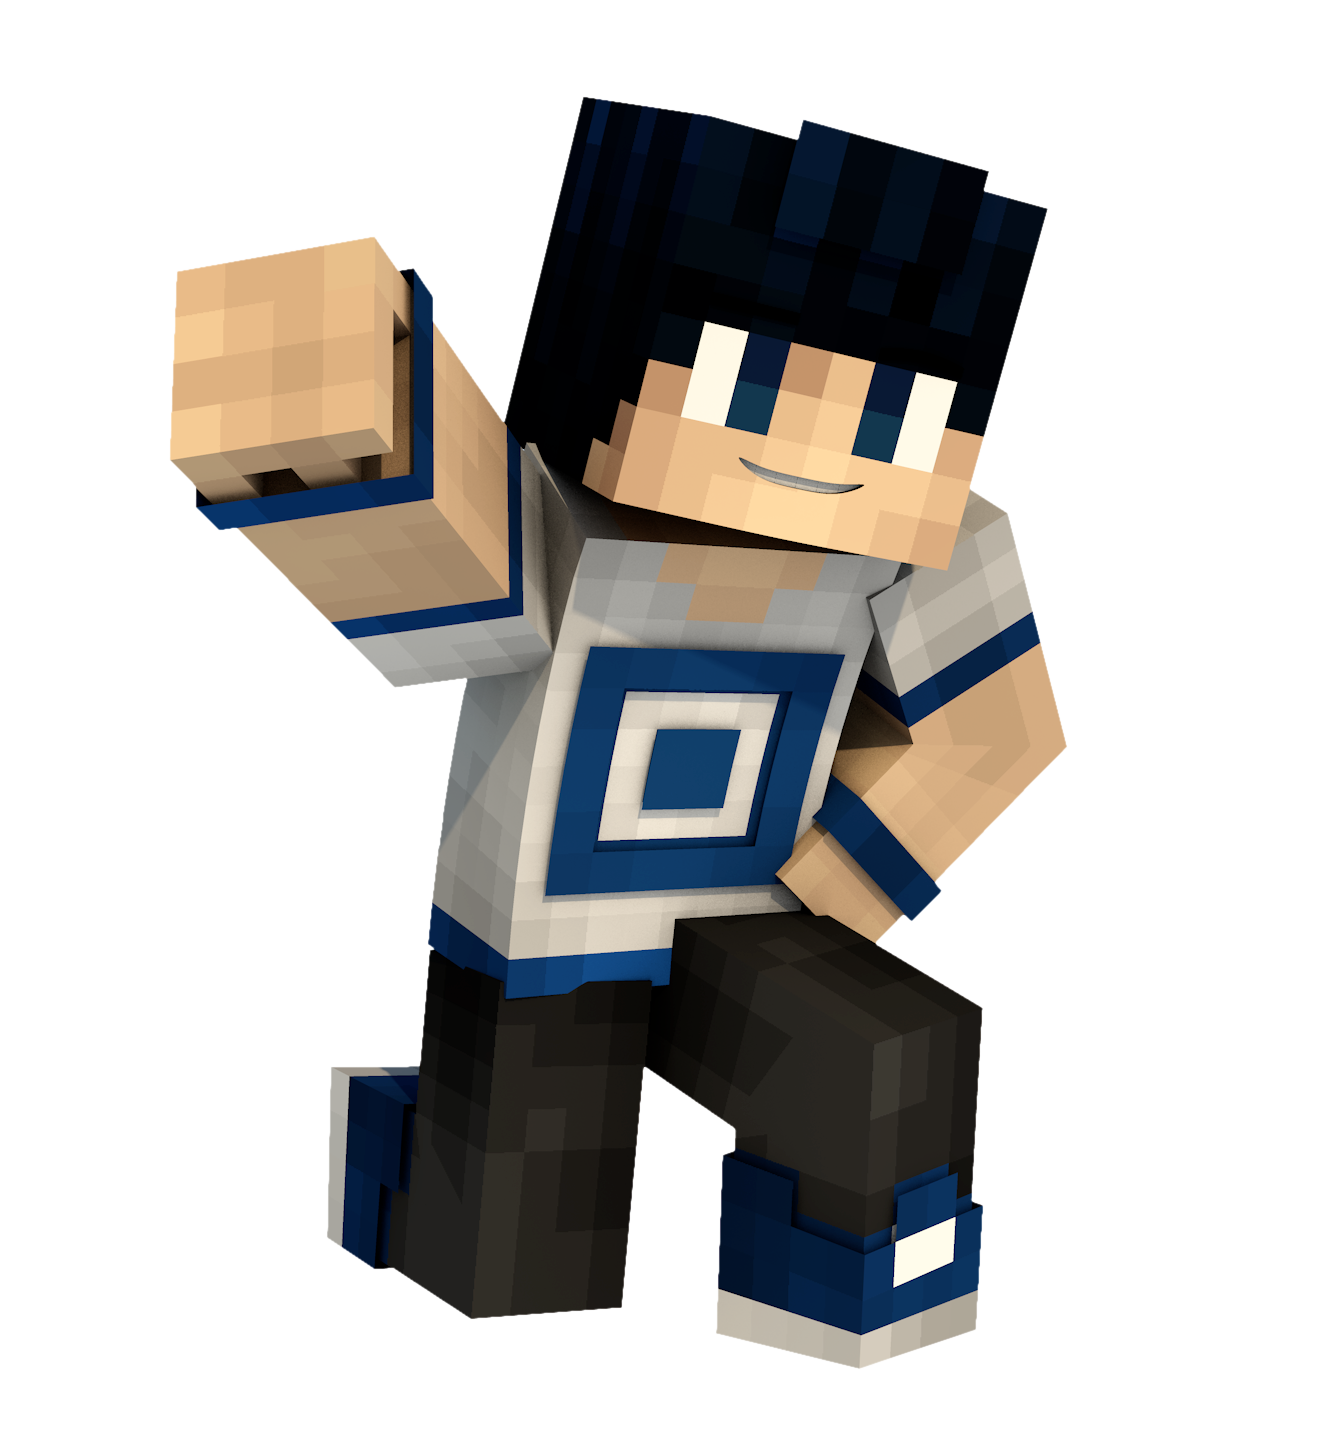 Minecraft skin png. Need a mc name